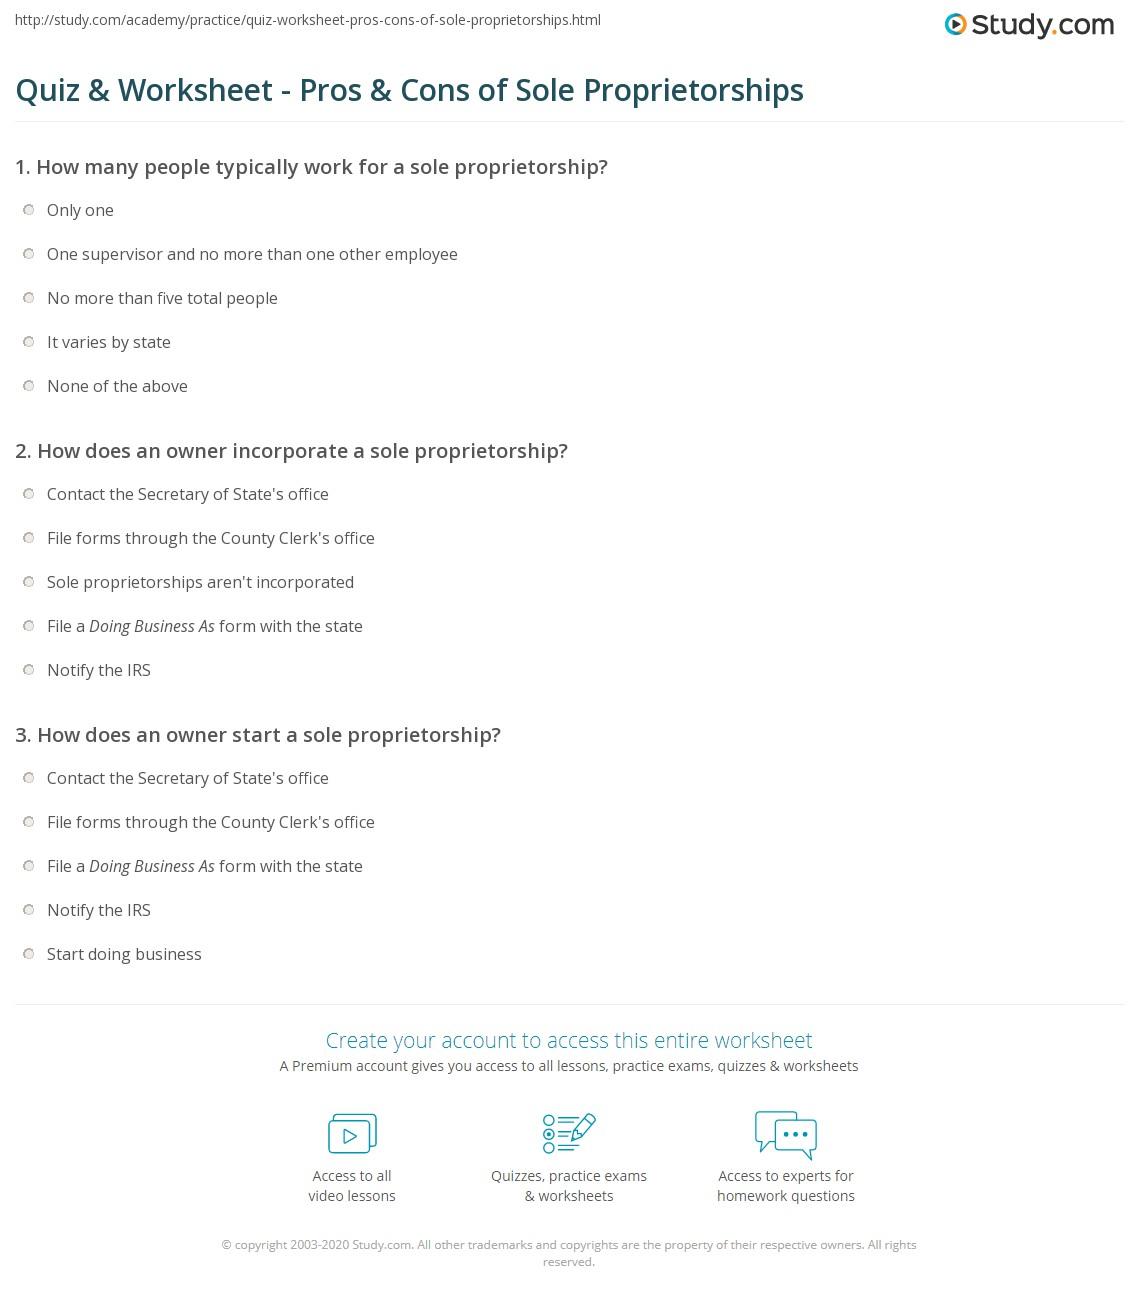 quiz & worksheet - pros & cons of sole proprietorships | study